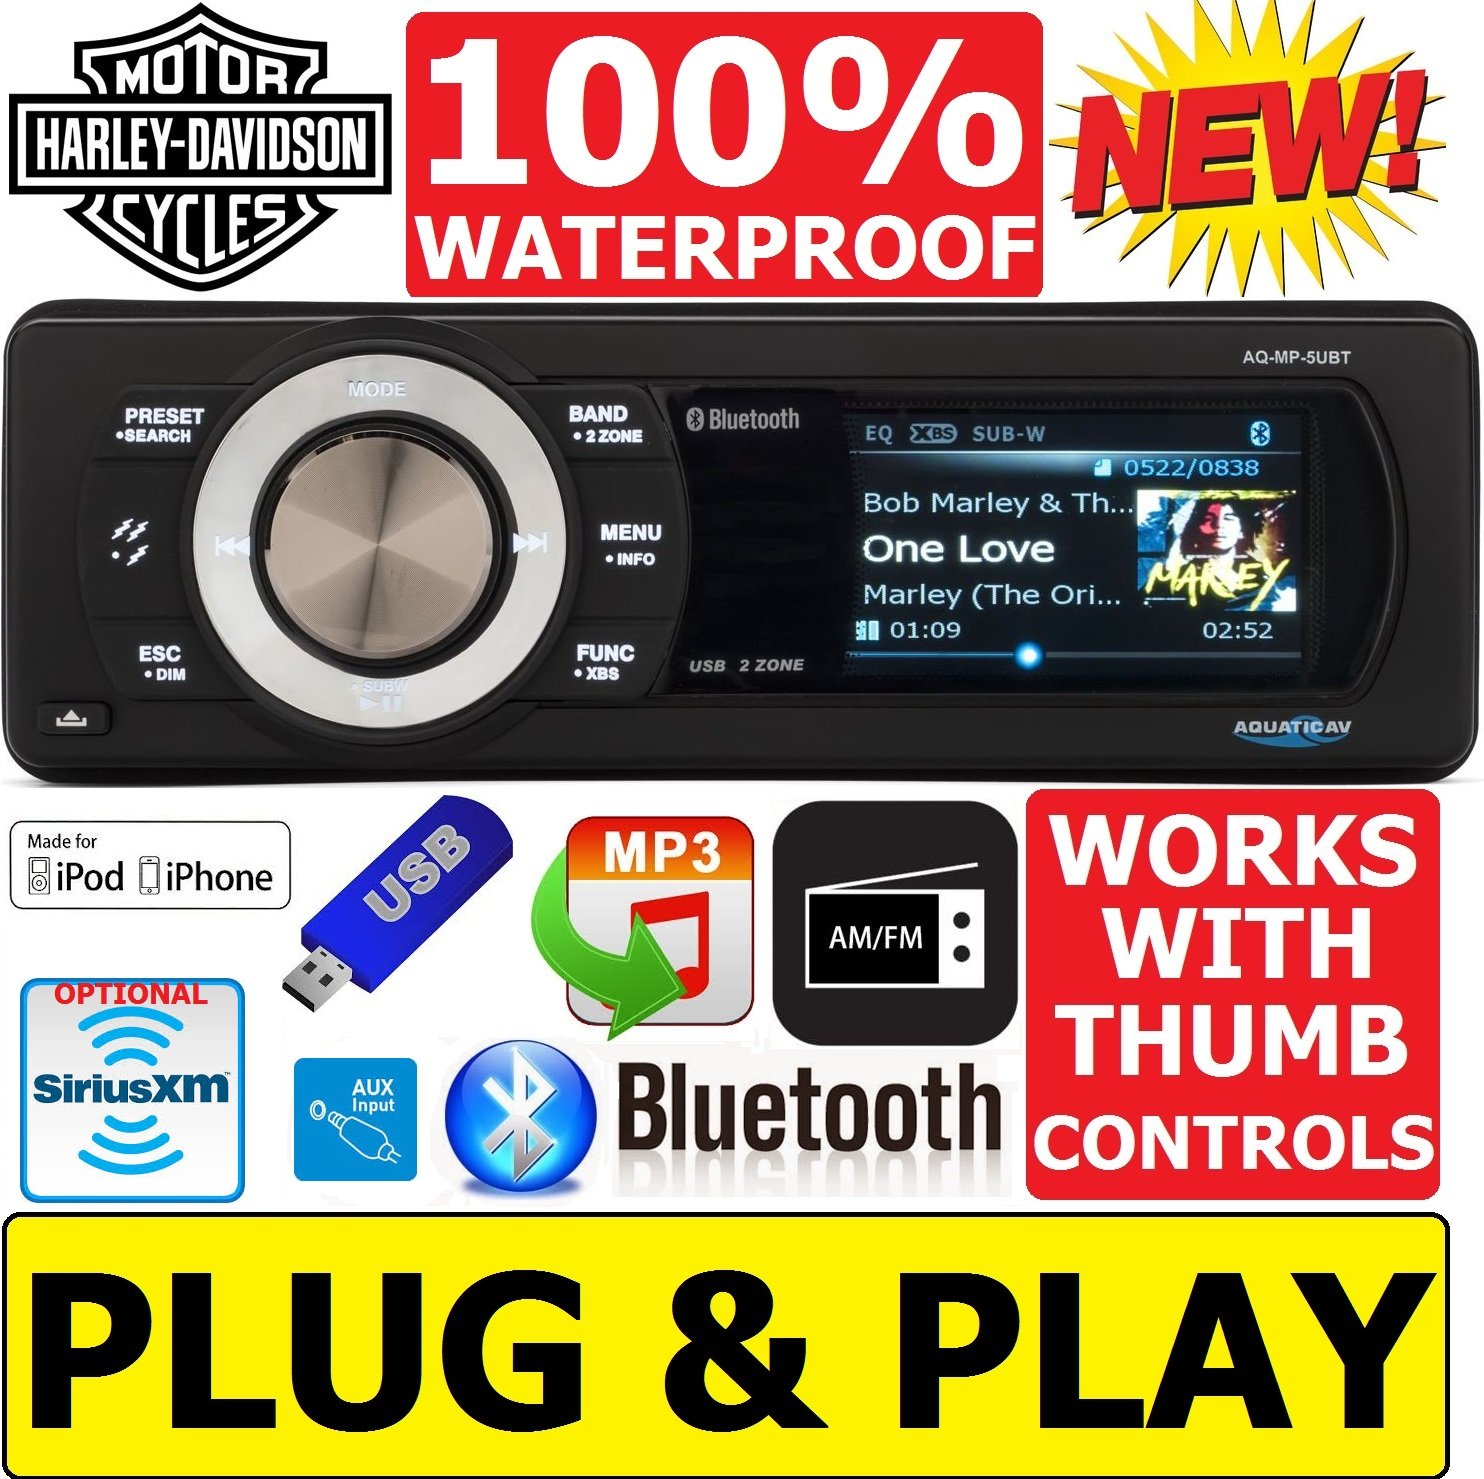 Plug -And -Play Harley Davidson Touring 1998-2013 Aquatic A/V Waterproof Radio Stereo Works With Thumb Controls Works with Iphone & Ipod